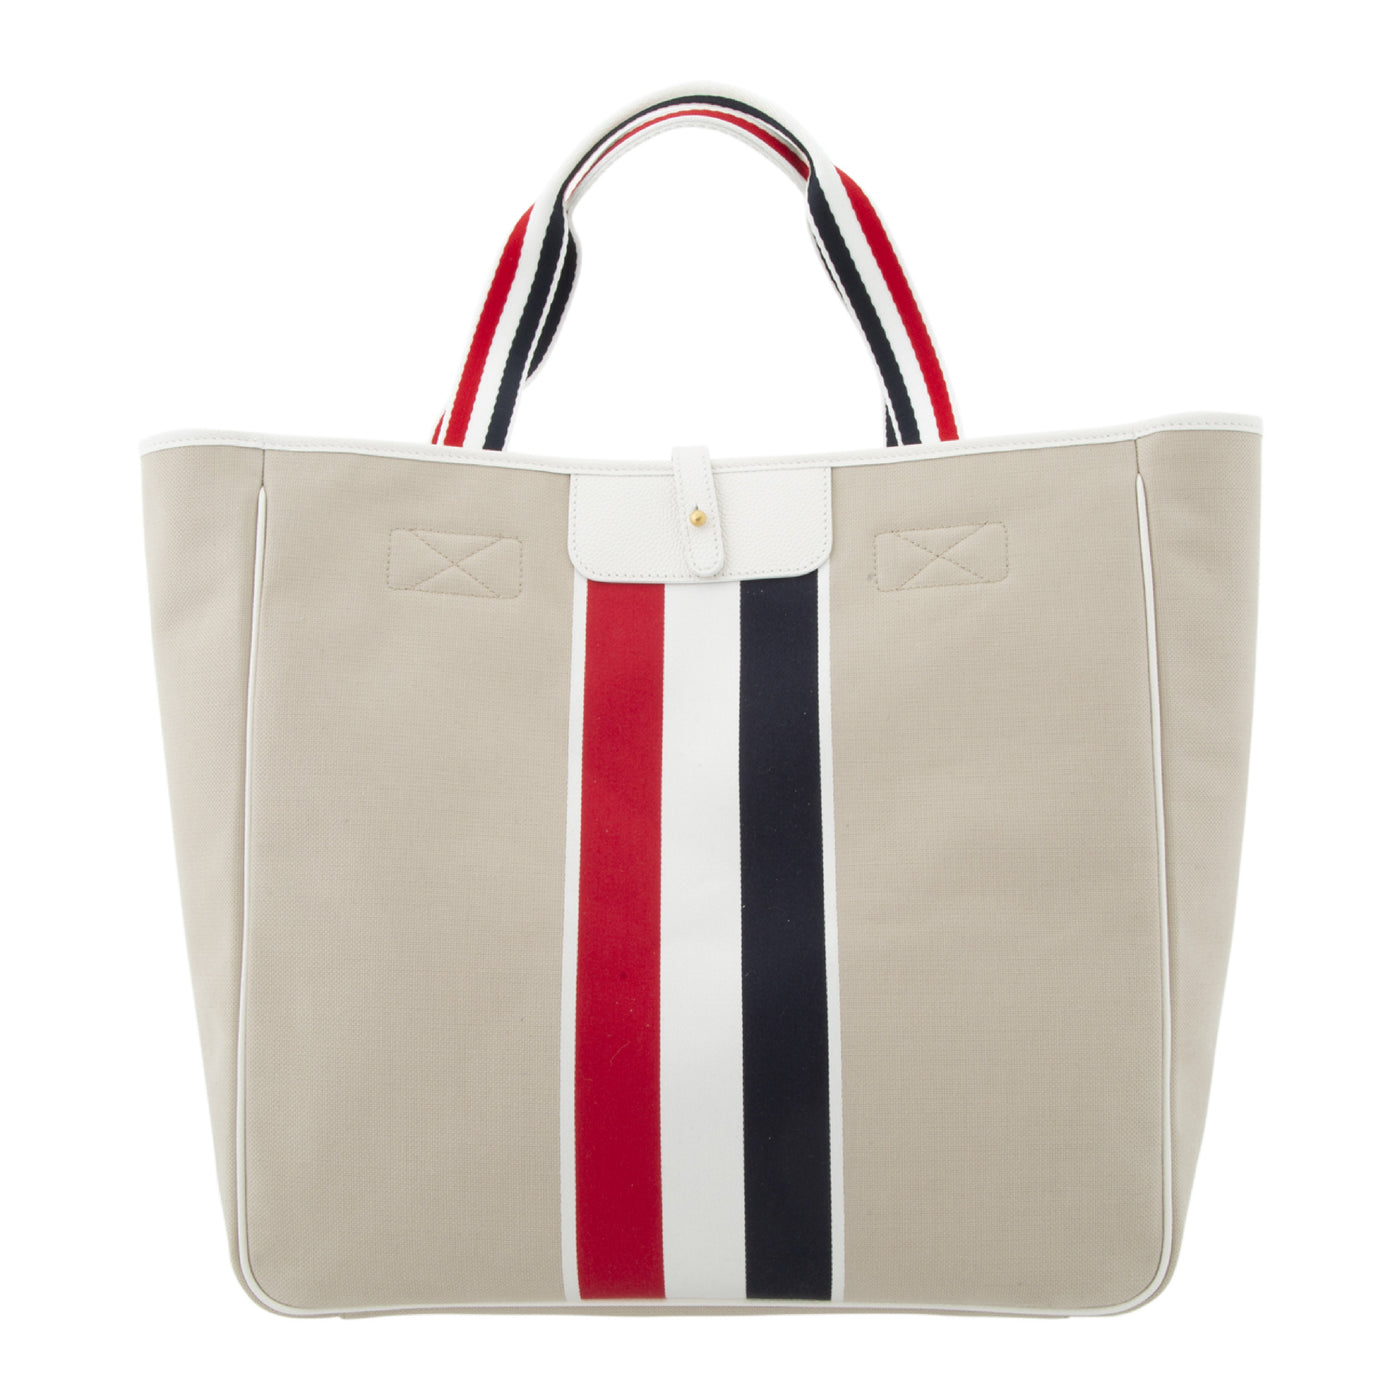 Load image into Gallery viewer, THOM BROWNE HUNTING TOTE NEUTRAL